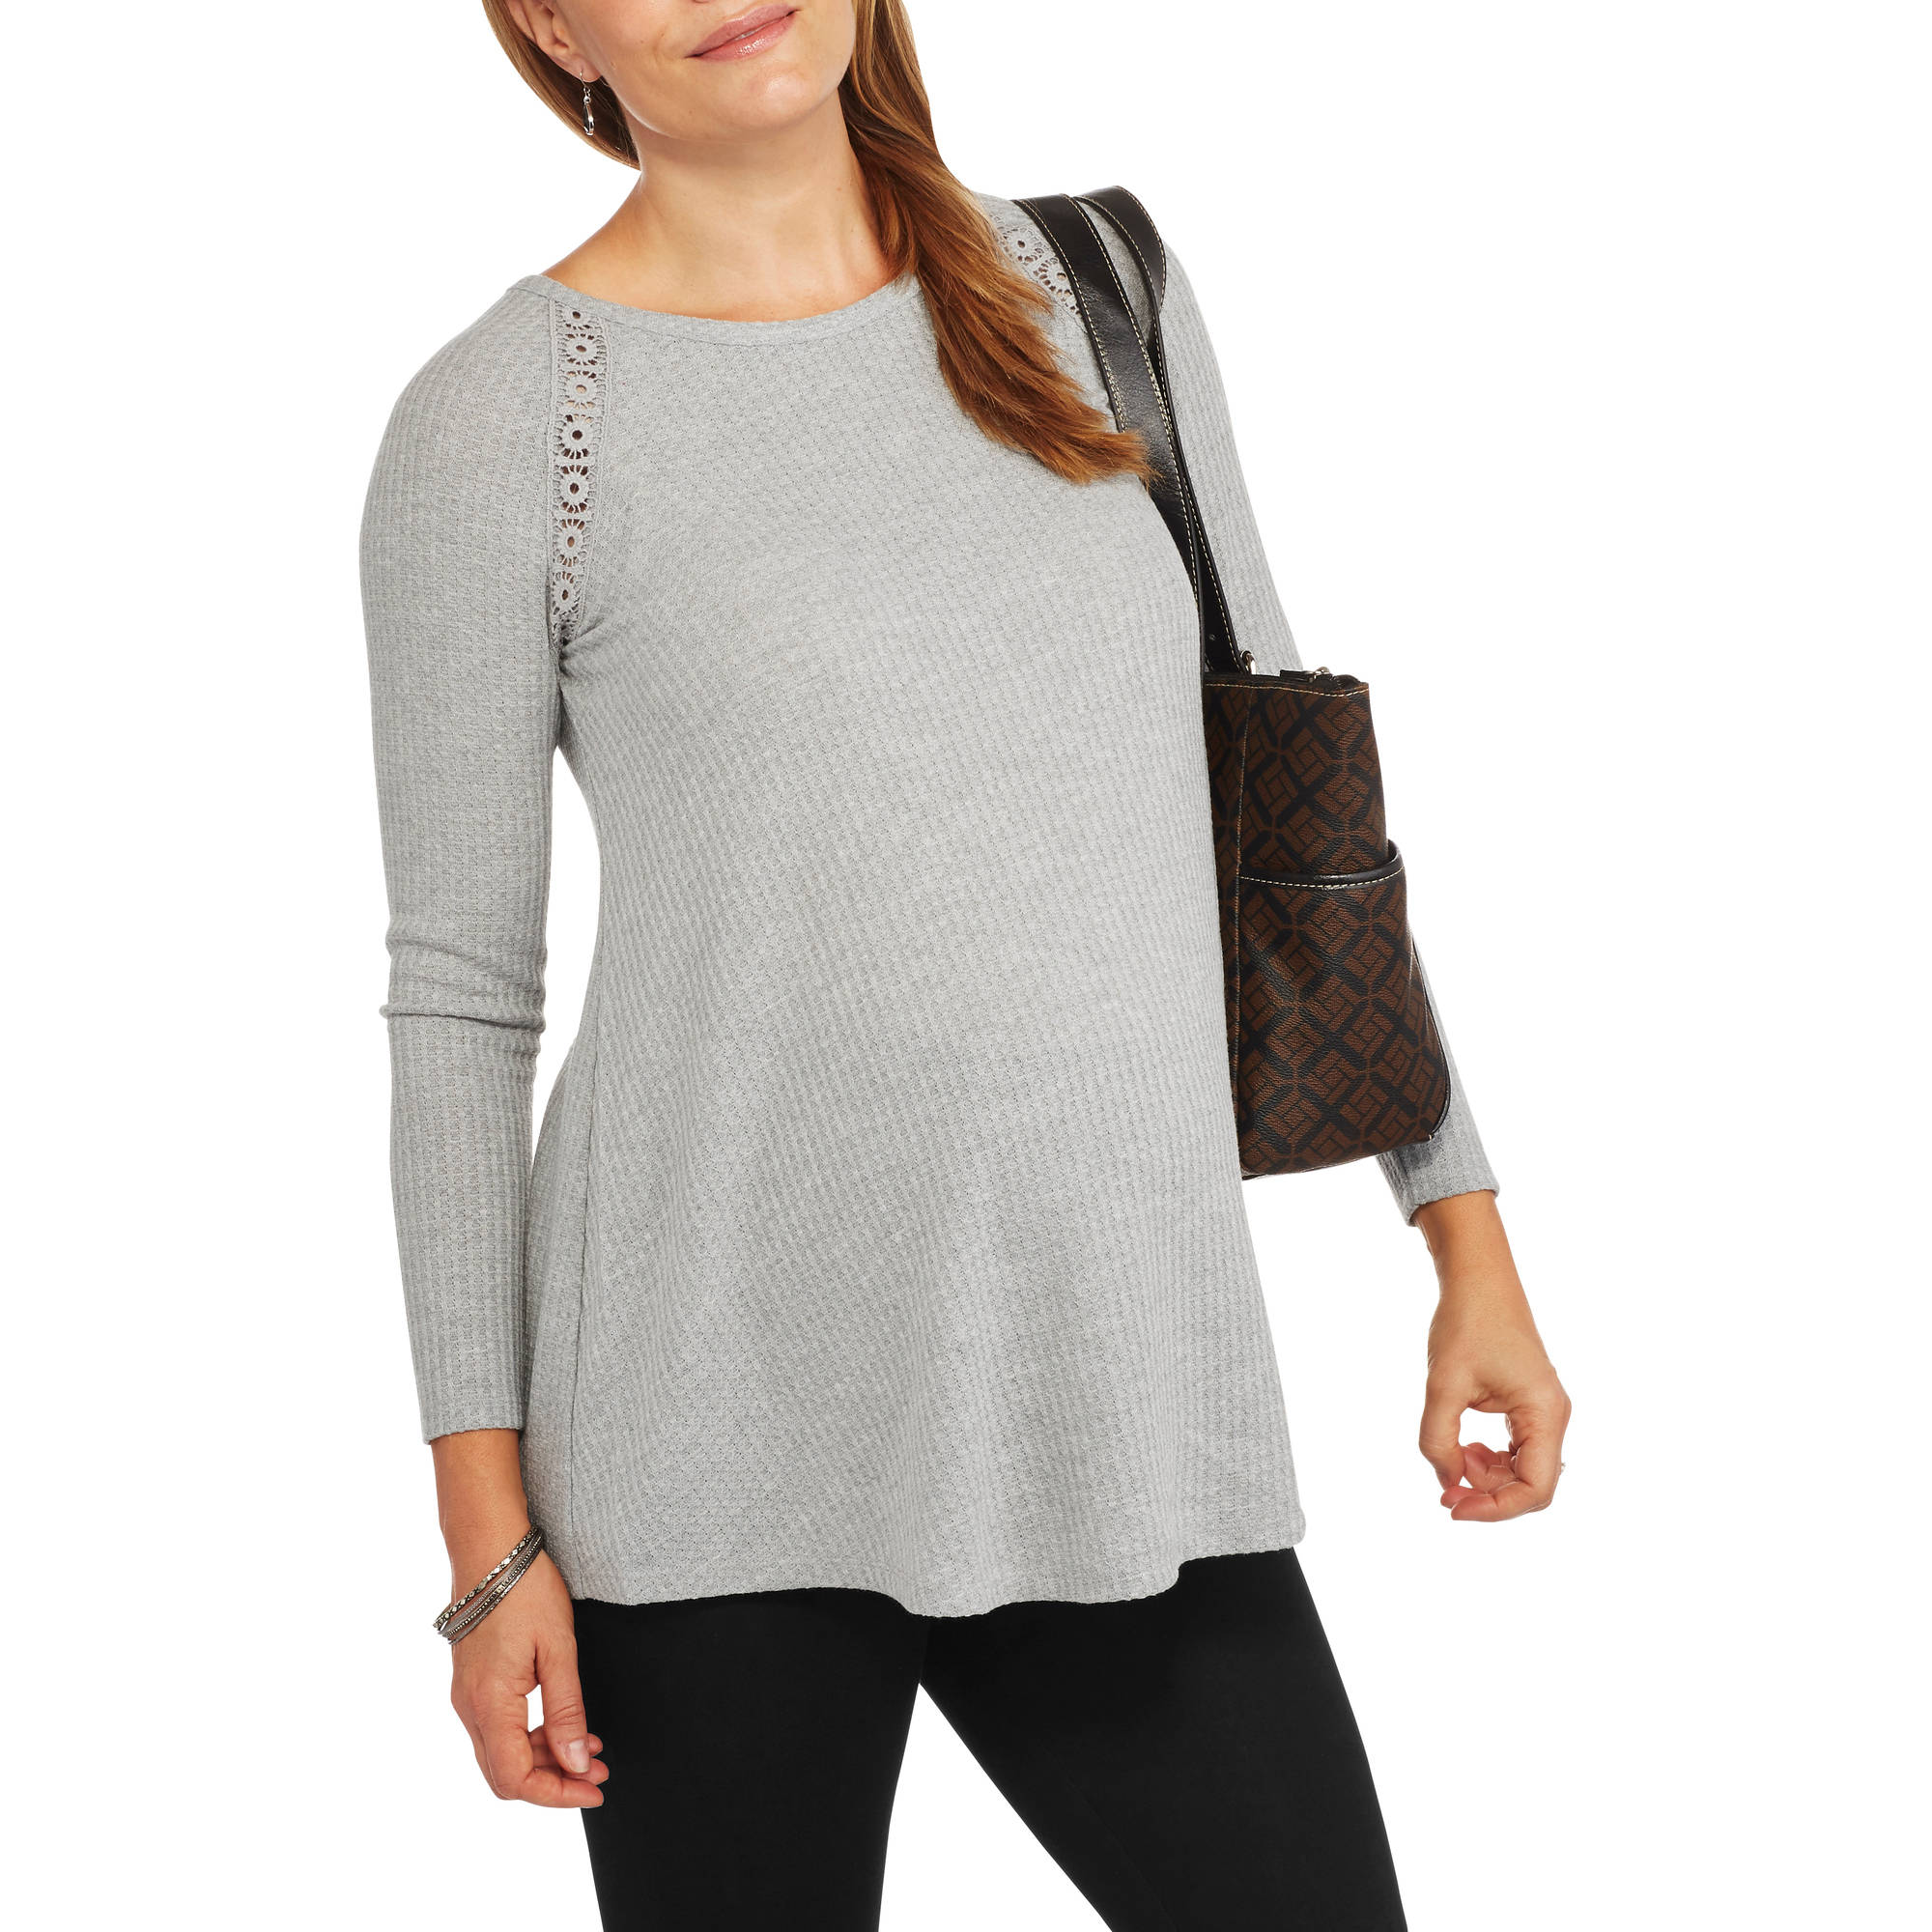 Faded Glory Maternity Fashion Thermal Tunic with Lace Back